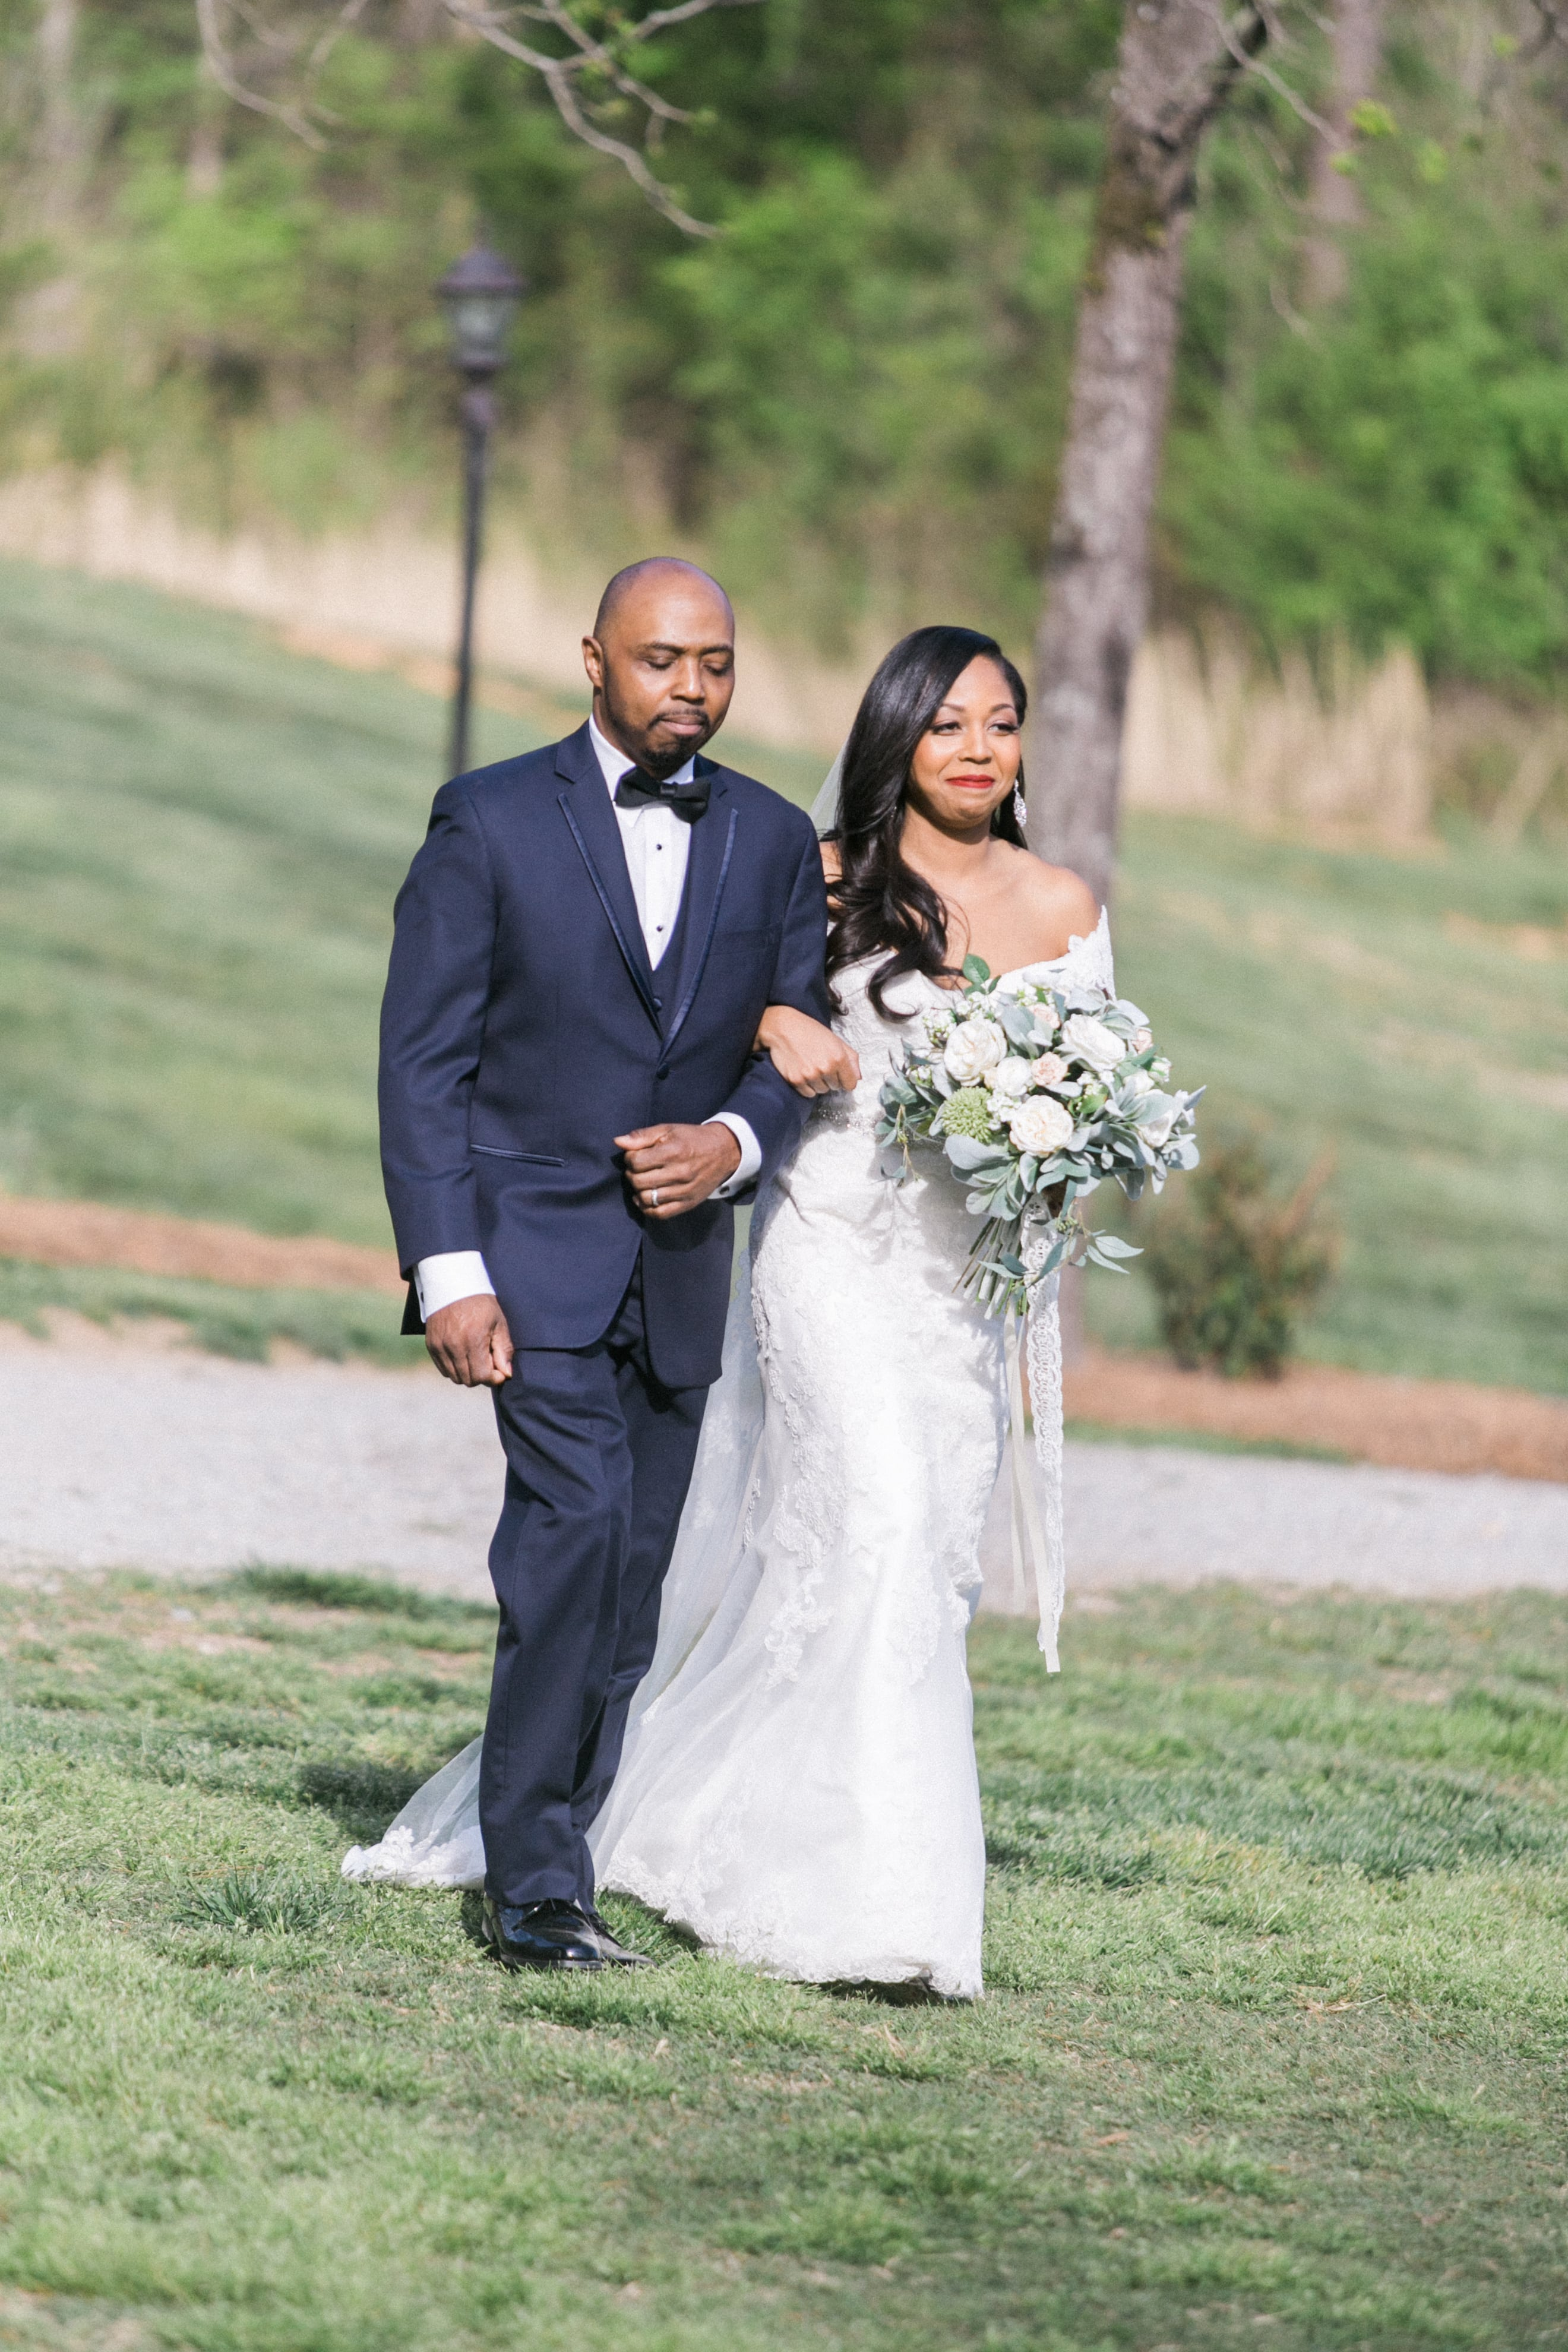 Bride being escorted down the aisle by her father for her ceremony at Vesuvius Vineyards captured by Almond Leaf Studios